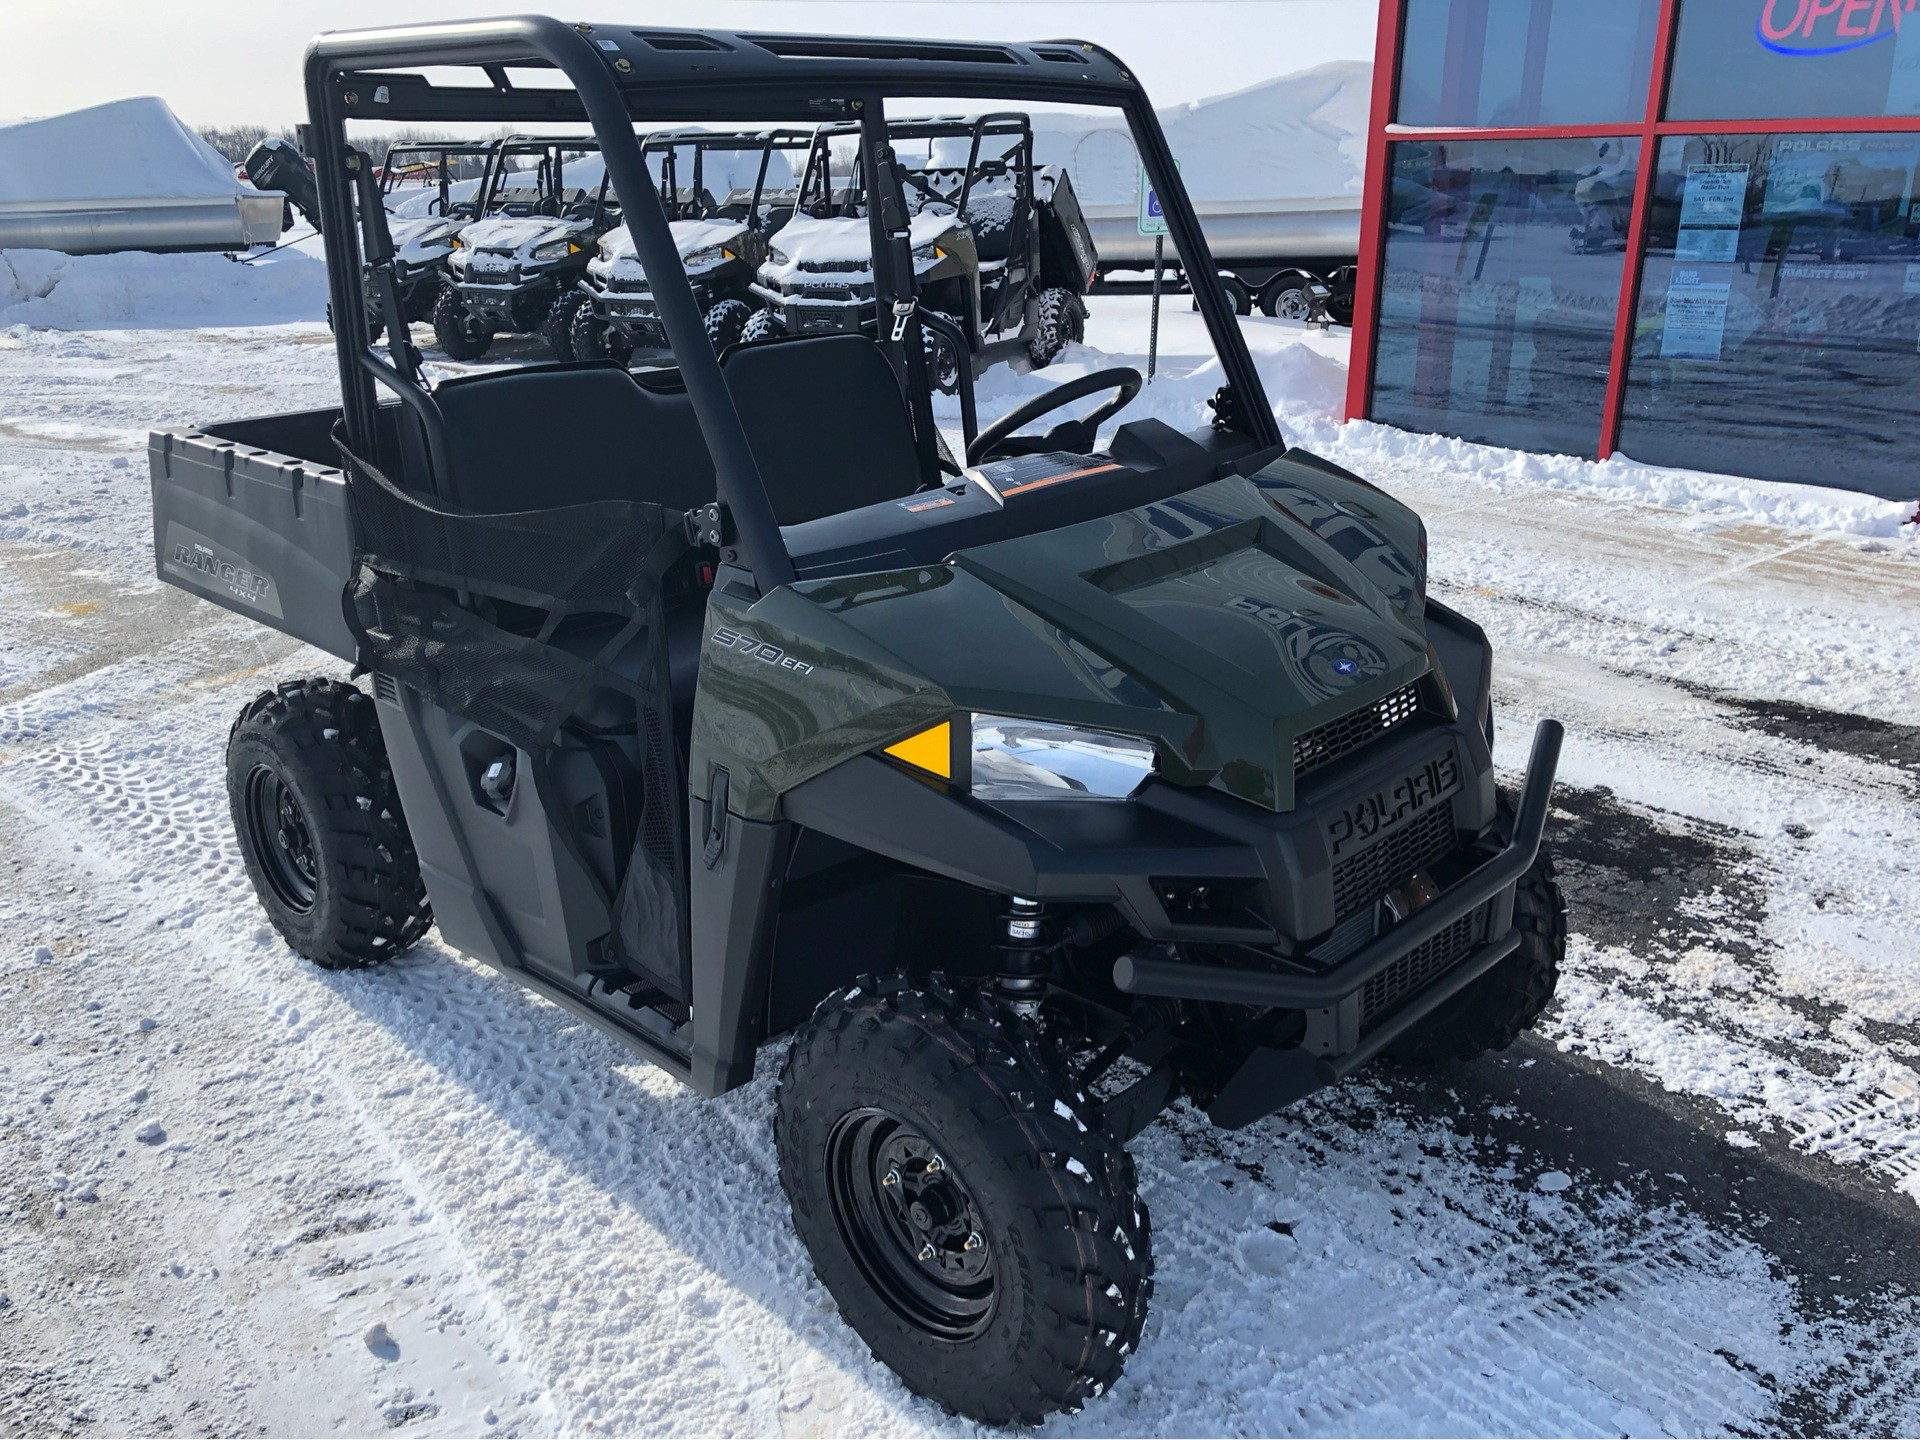 2019 Polaris Ranger 570 for sale 14285